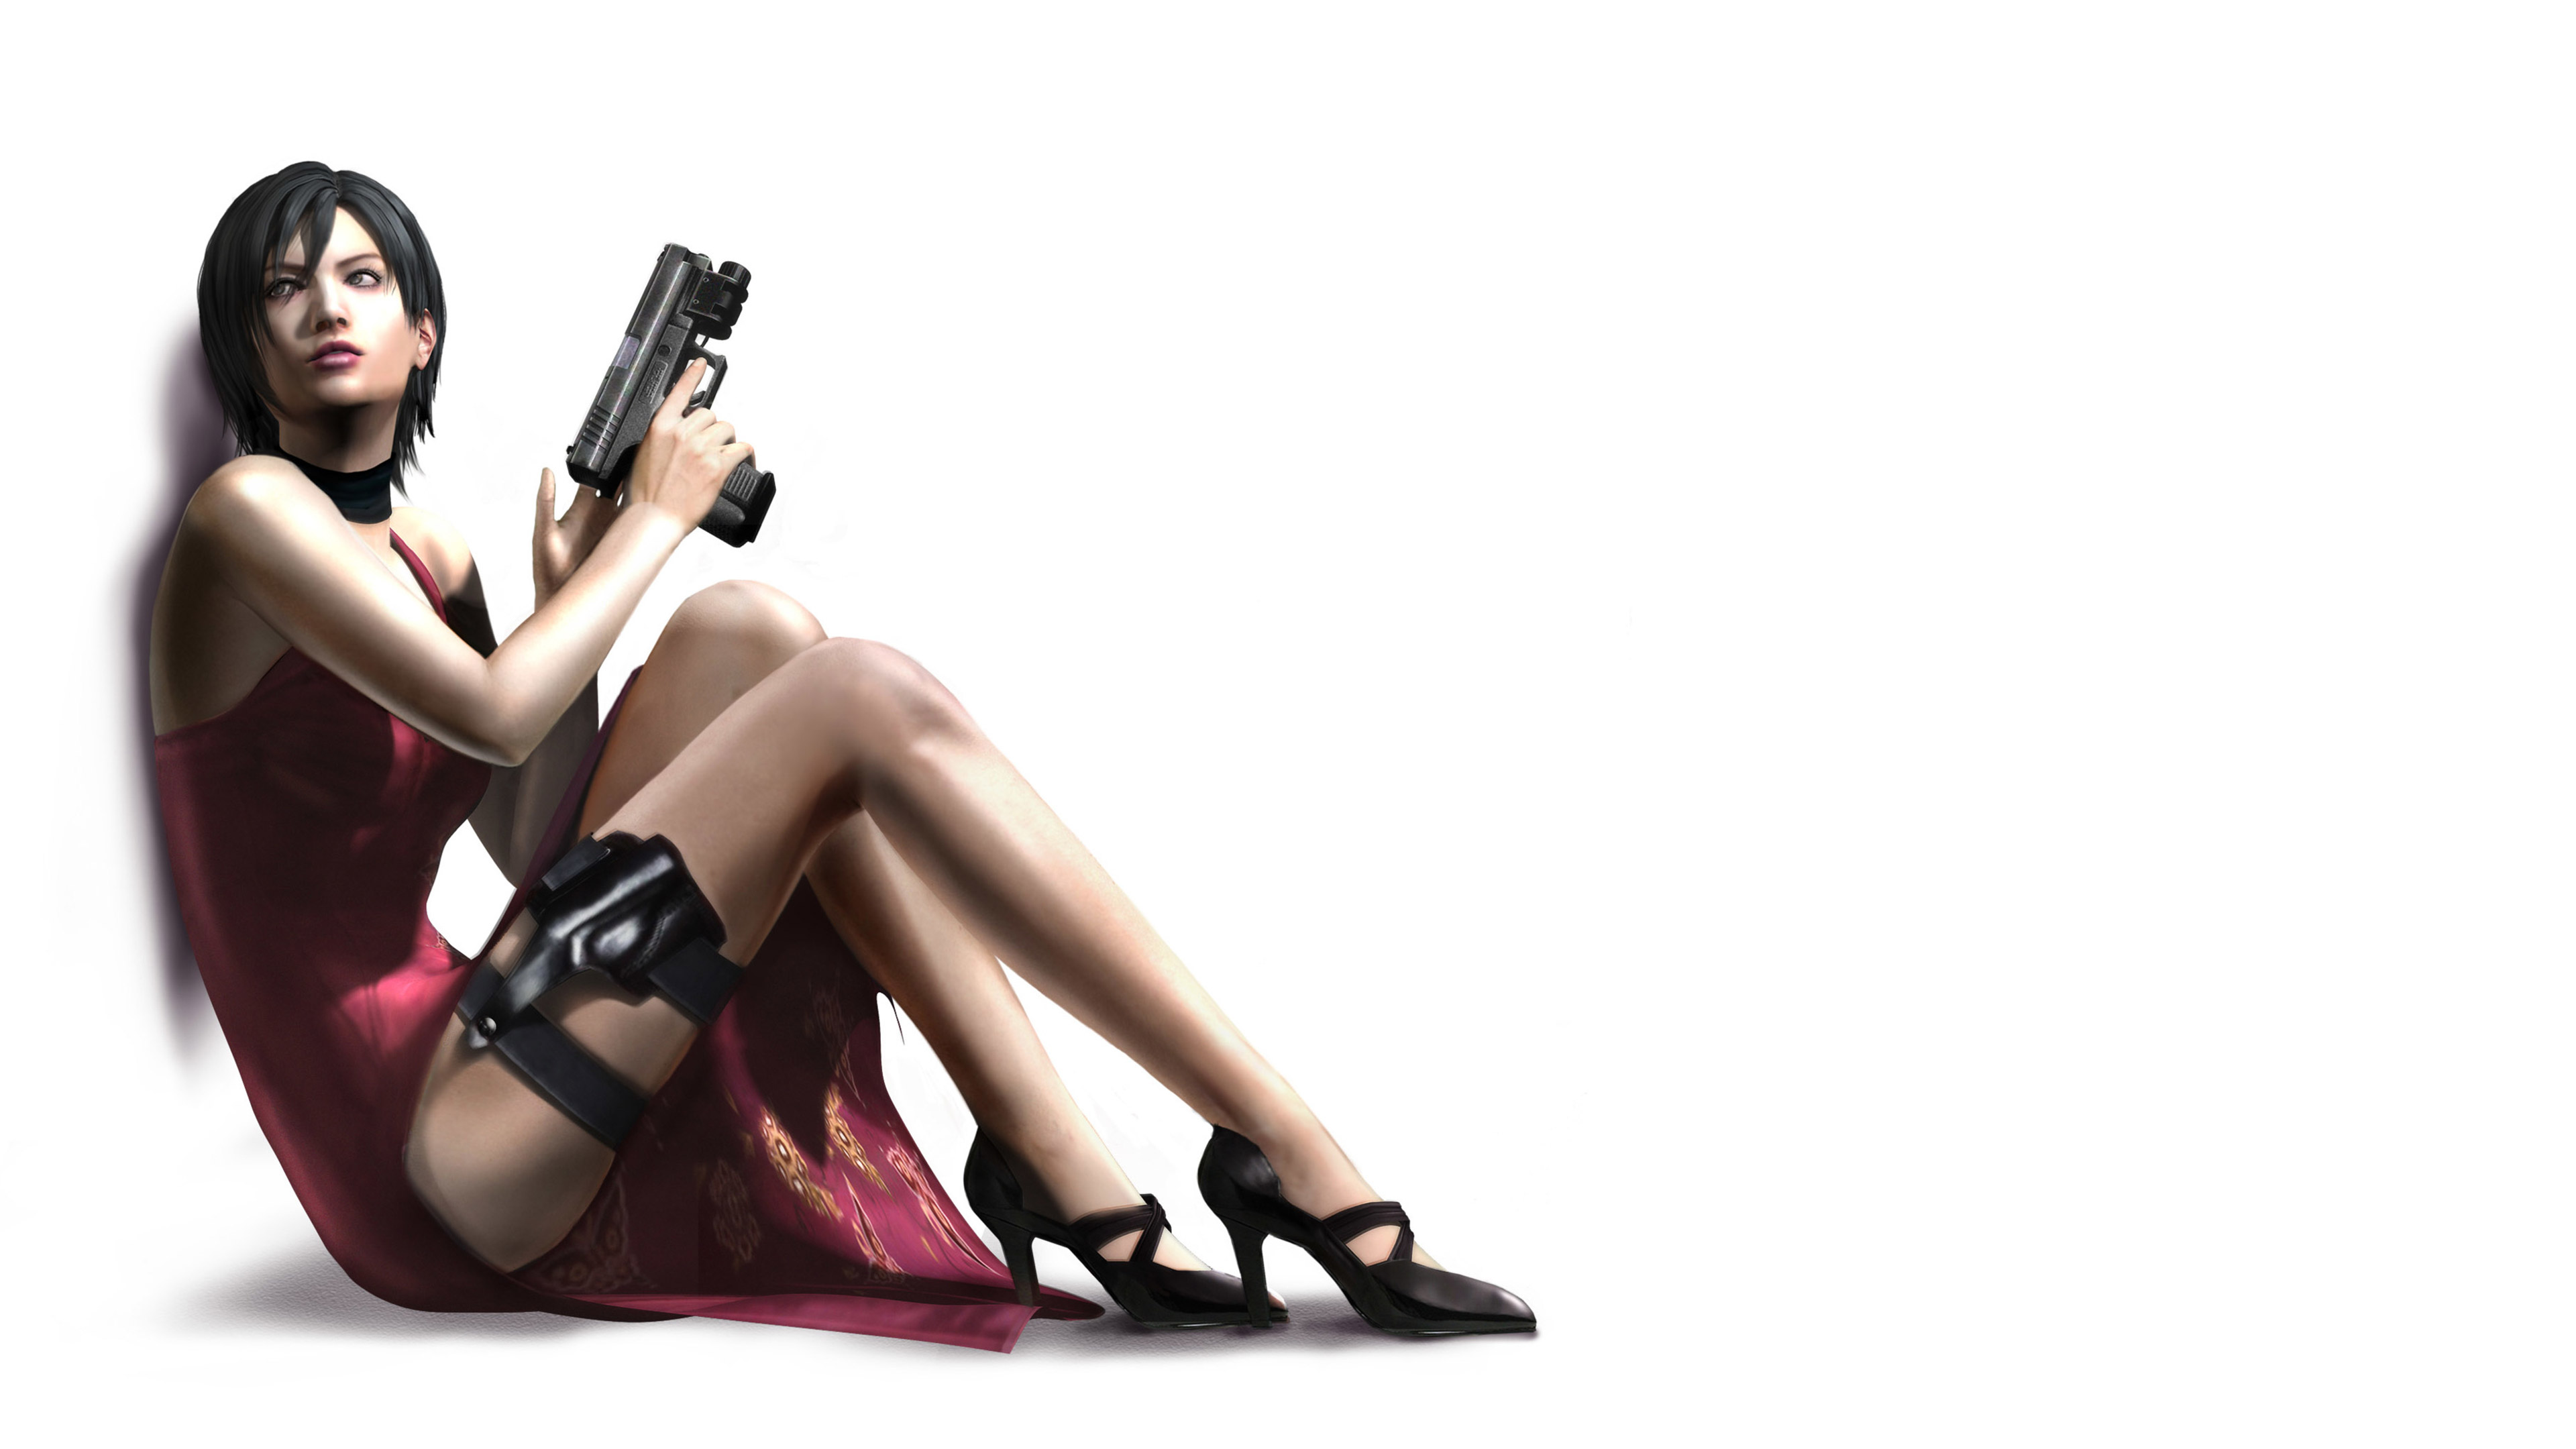 sexy 1600x900 hd game wallpapers - photo #8